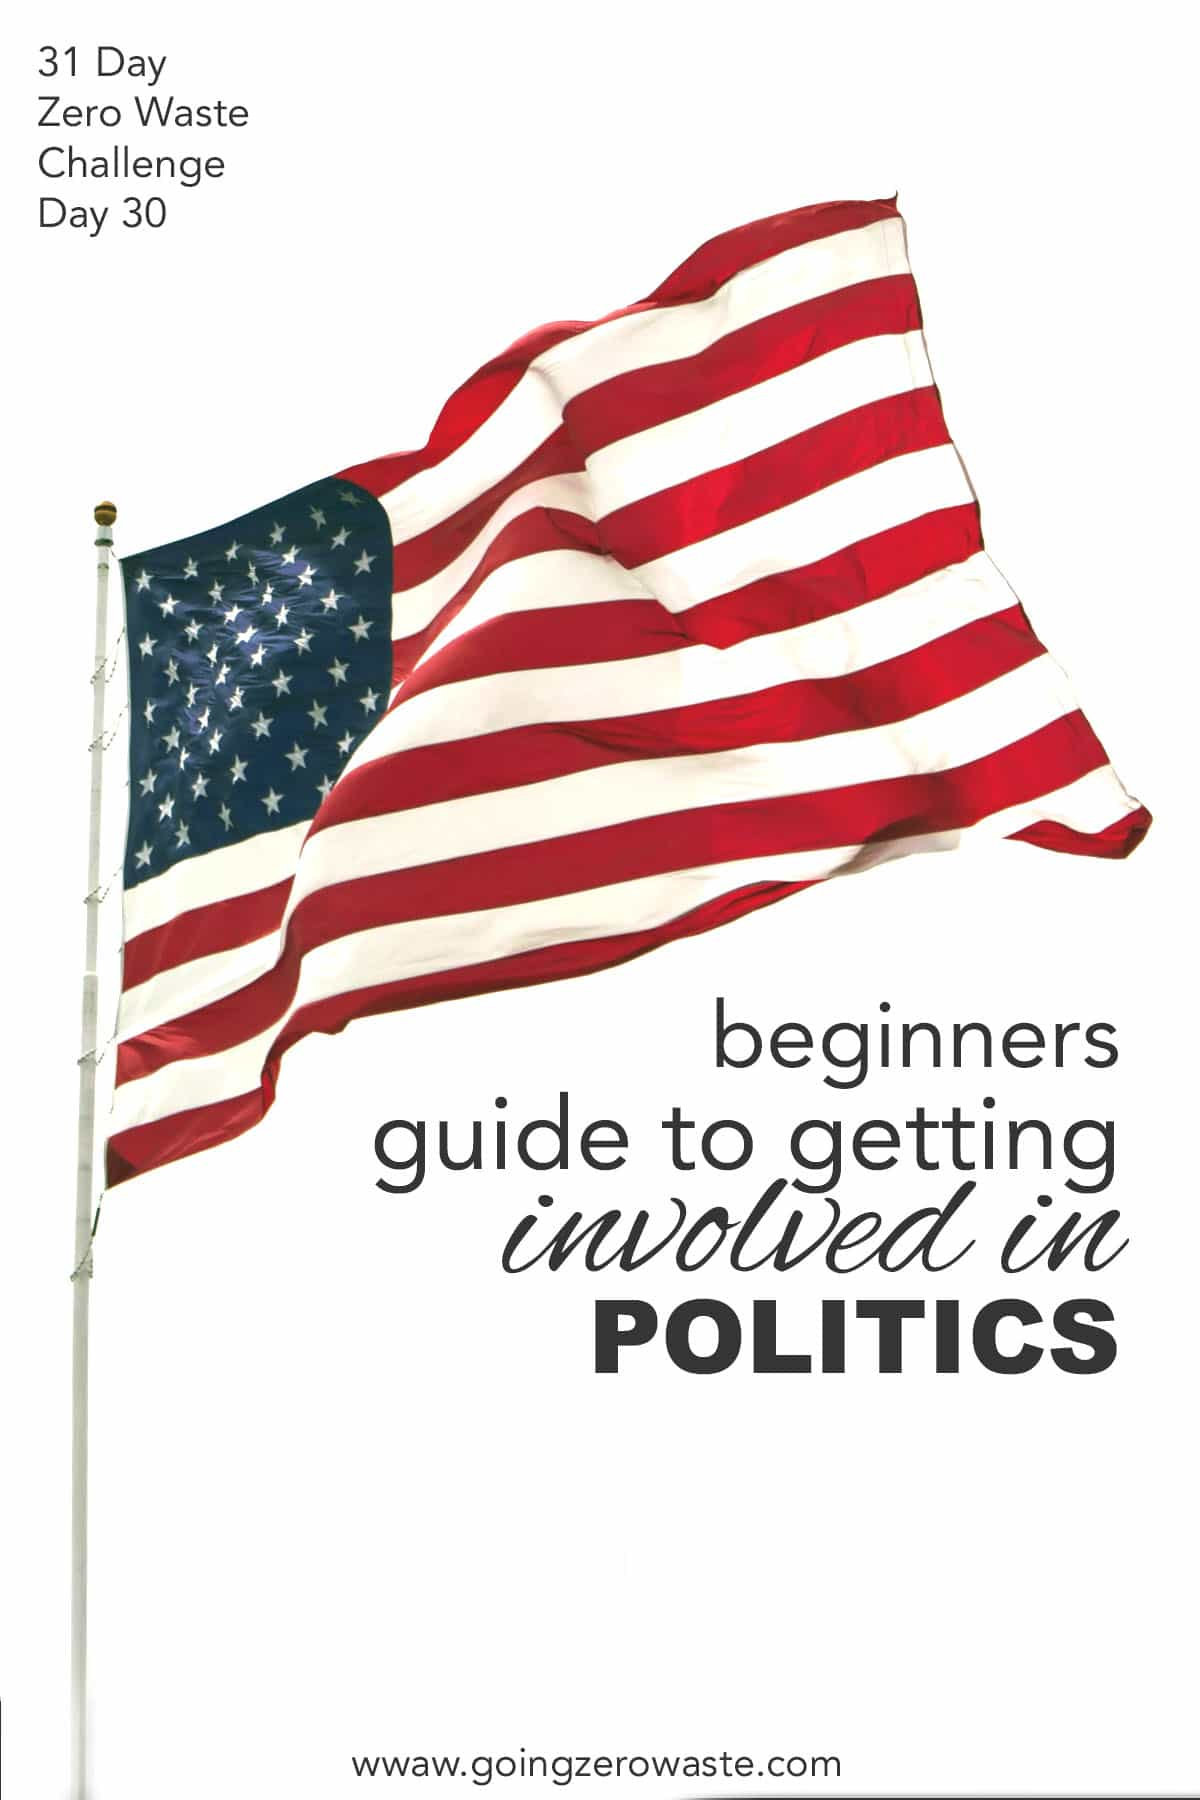 Beginners Guide to Getting Politically Involved - Day 30 of the Zero Waste Challenge from www.goingzerowaste.com #zerowaste #ecofriendly #gogreen #sustainable #zerowastechallenge #challenge #sustainablelivingchallenge #getpolticallyactive #politics #localgovernment